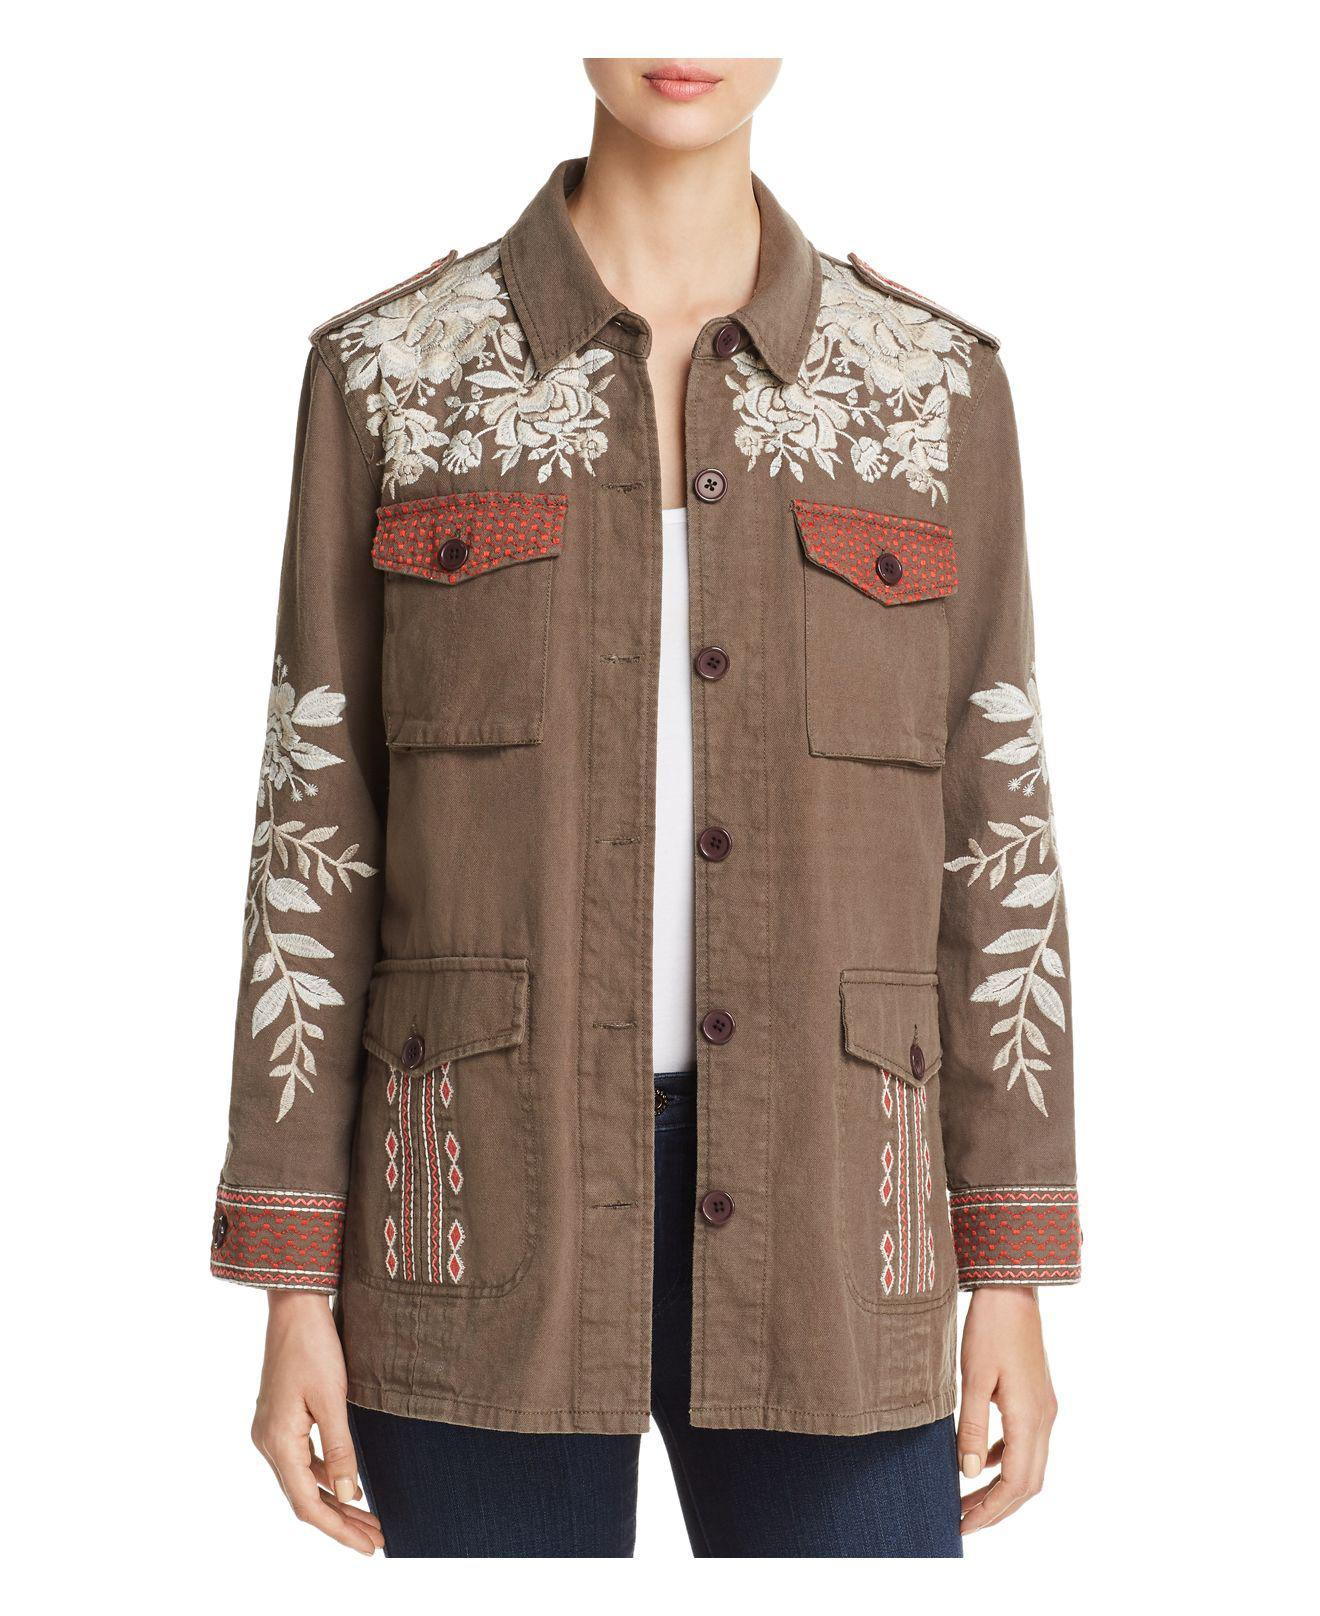 Johnny Was Surya Embroidered Military Jacket - Lyst